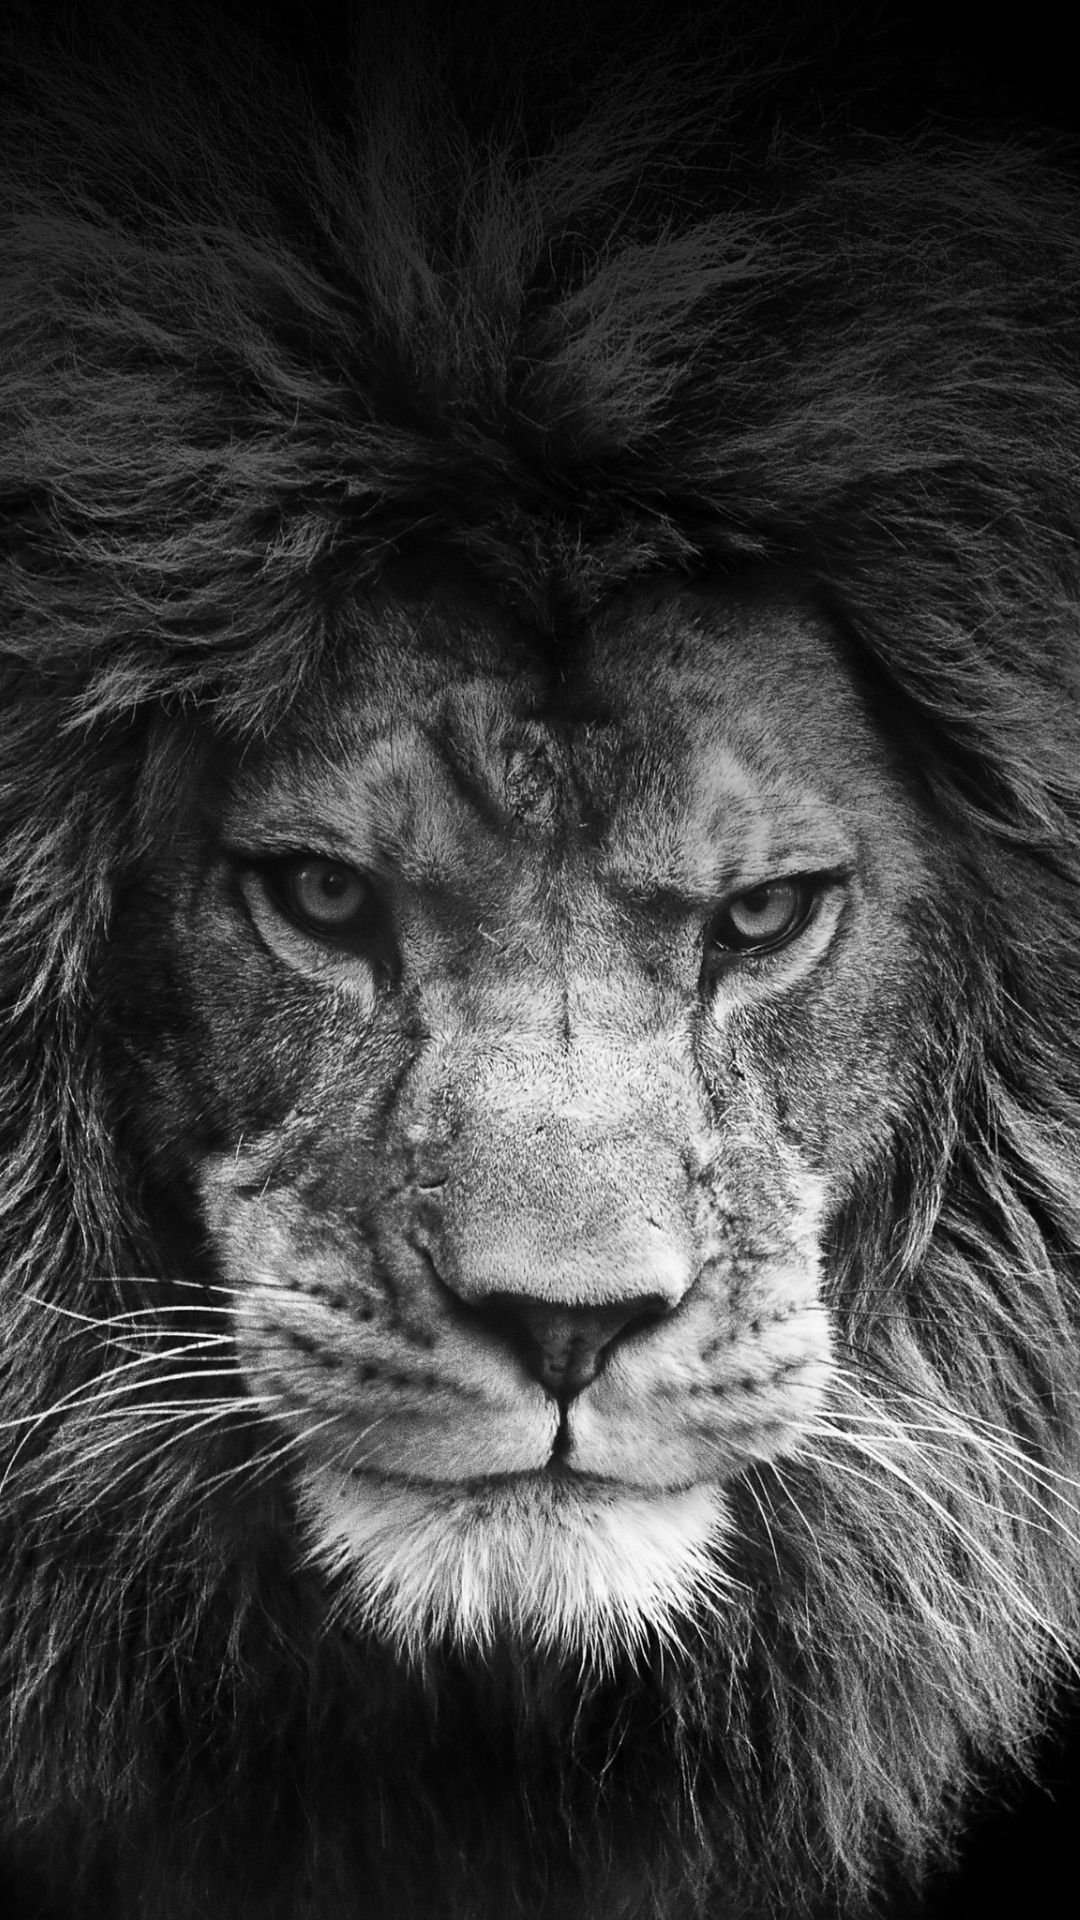 Pin By Hdpicorner On Desktop Wallpapers Pinterest Animals Lion